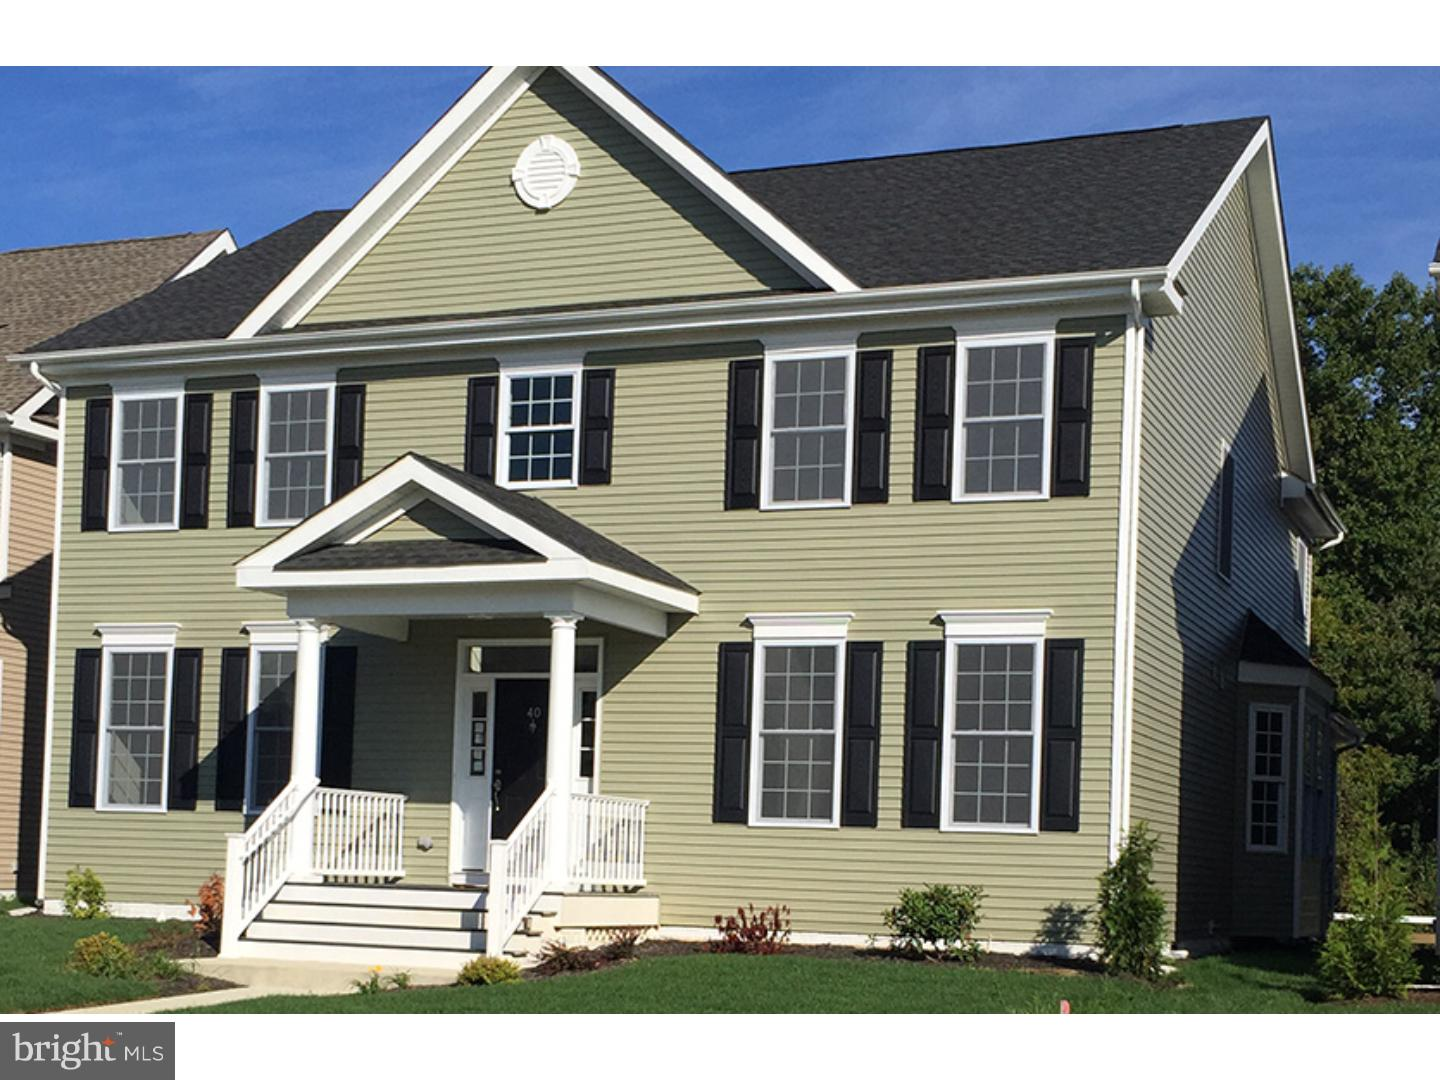 Single Family Home for Sale at 12 ANTRON BROWN WAY Chesterfield, New Jersey 08505 United StatesMunicipality: Chesterfield Township